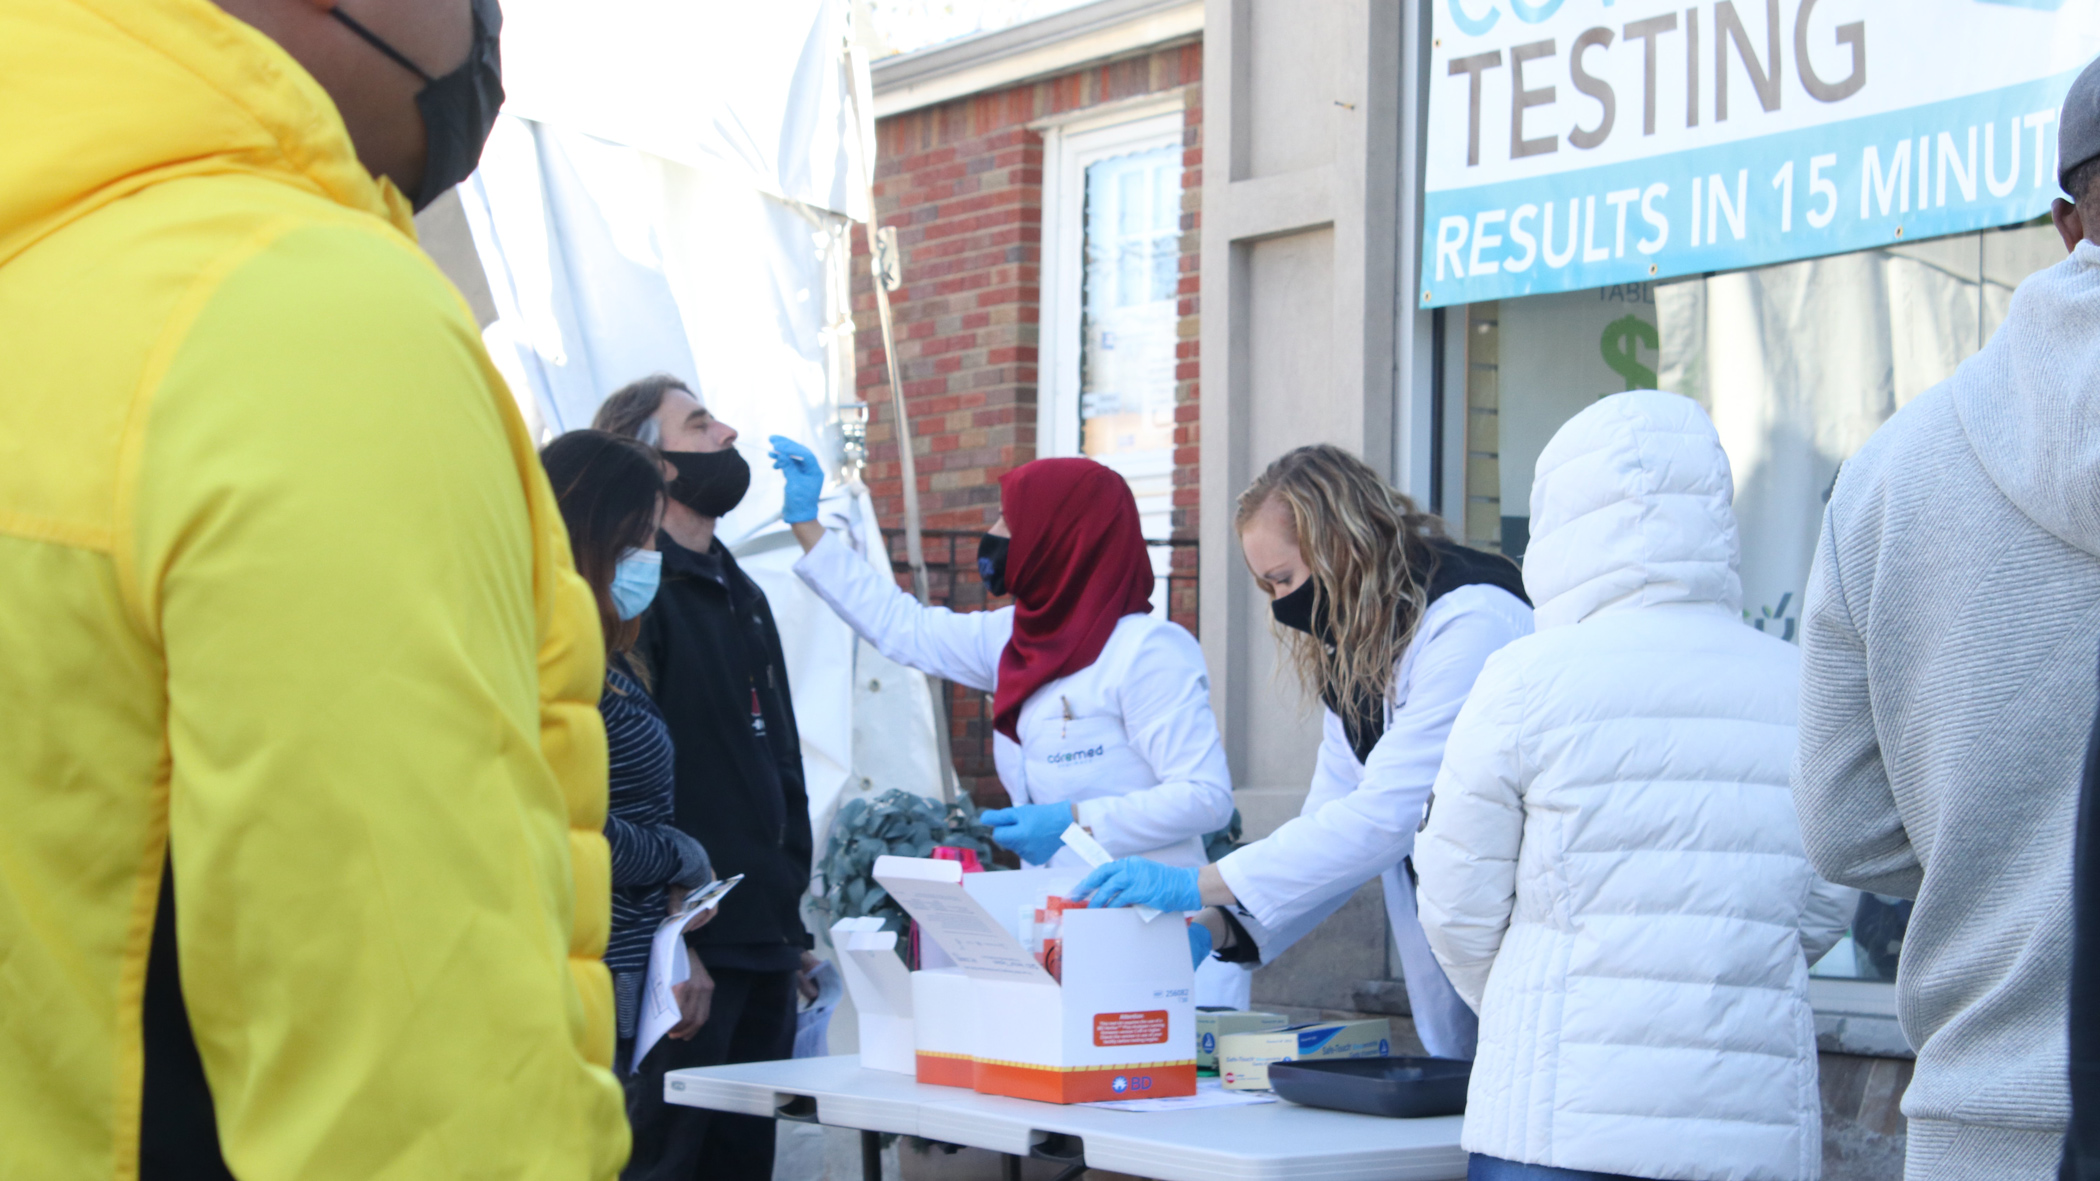 People getting COVID tests at an outdoor testing station